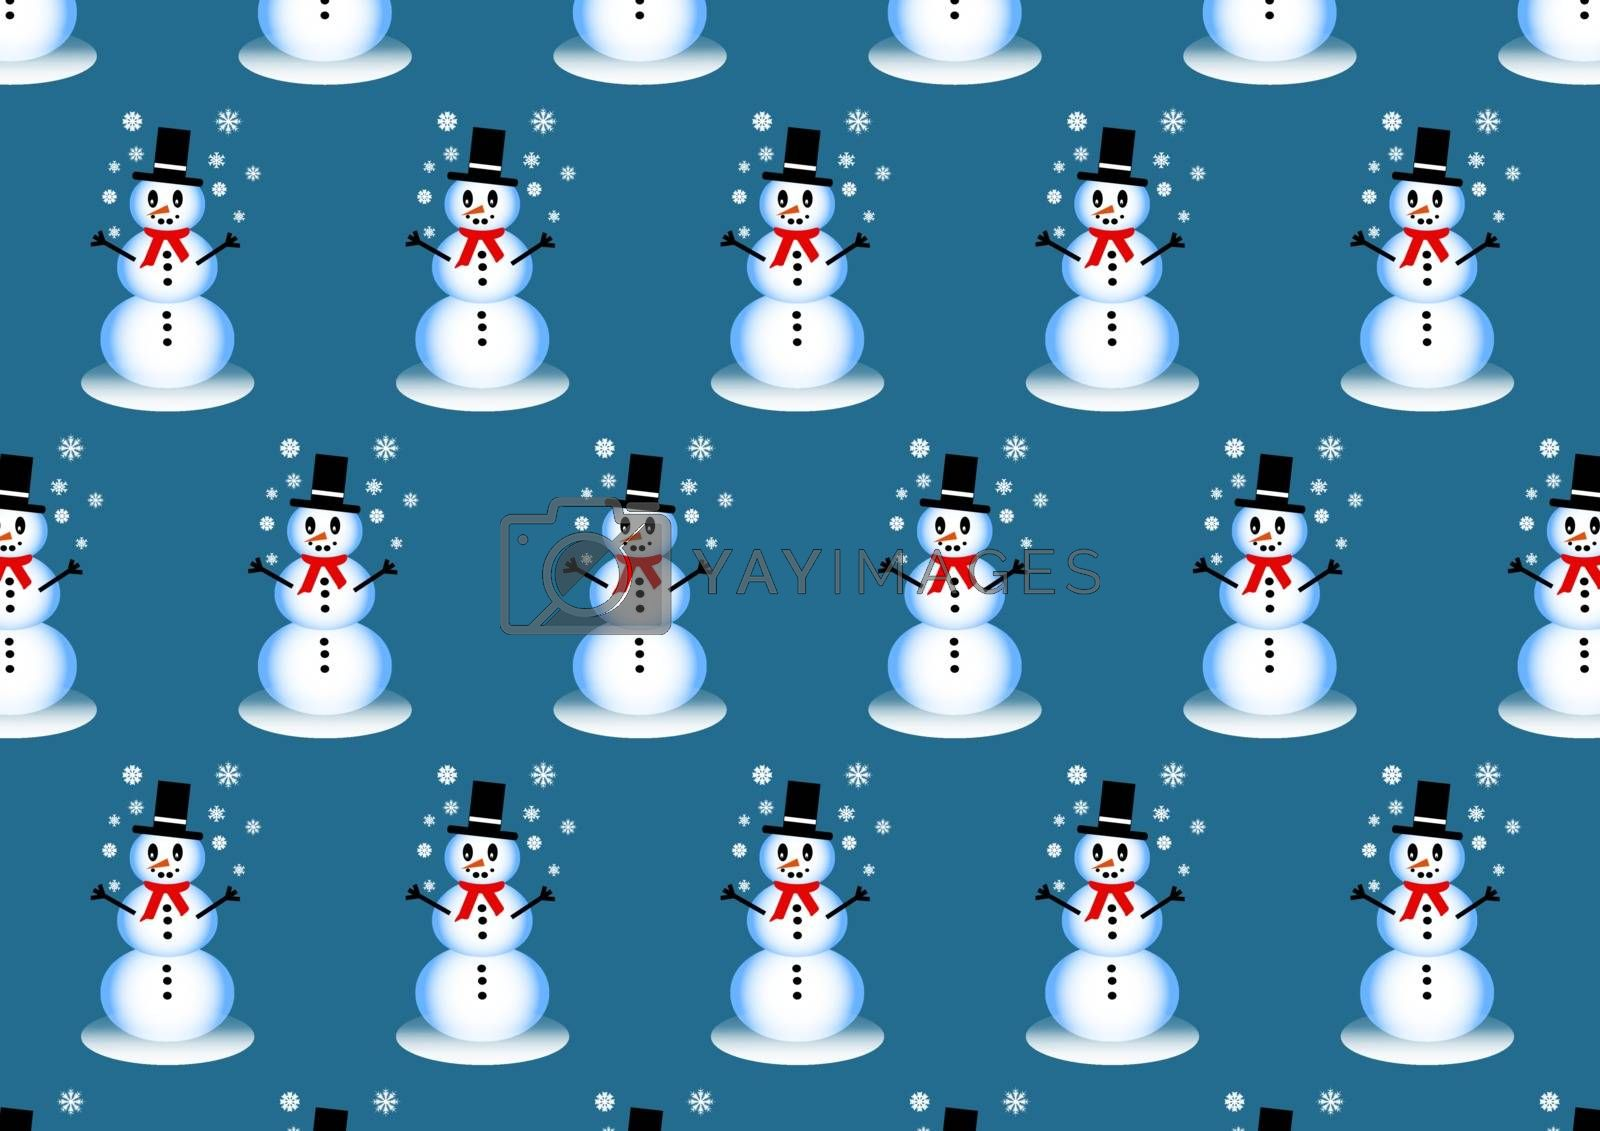 Winter pattern with smiling snowman playing with snowflakes on the trendy blue background.